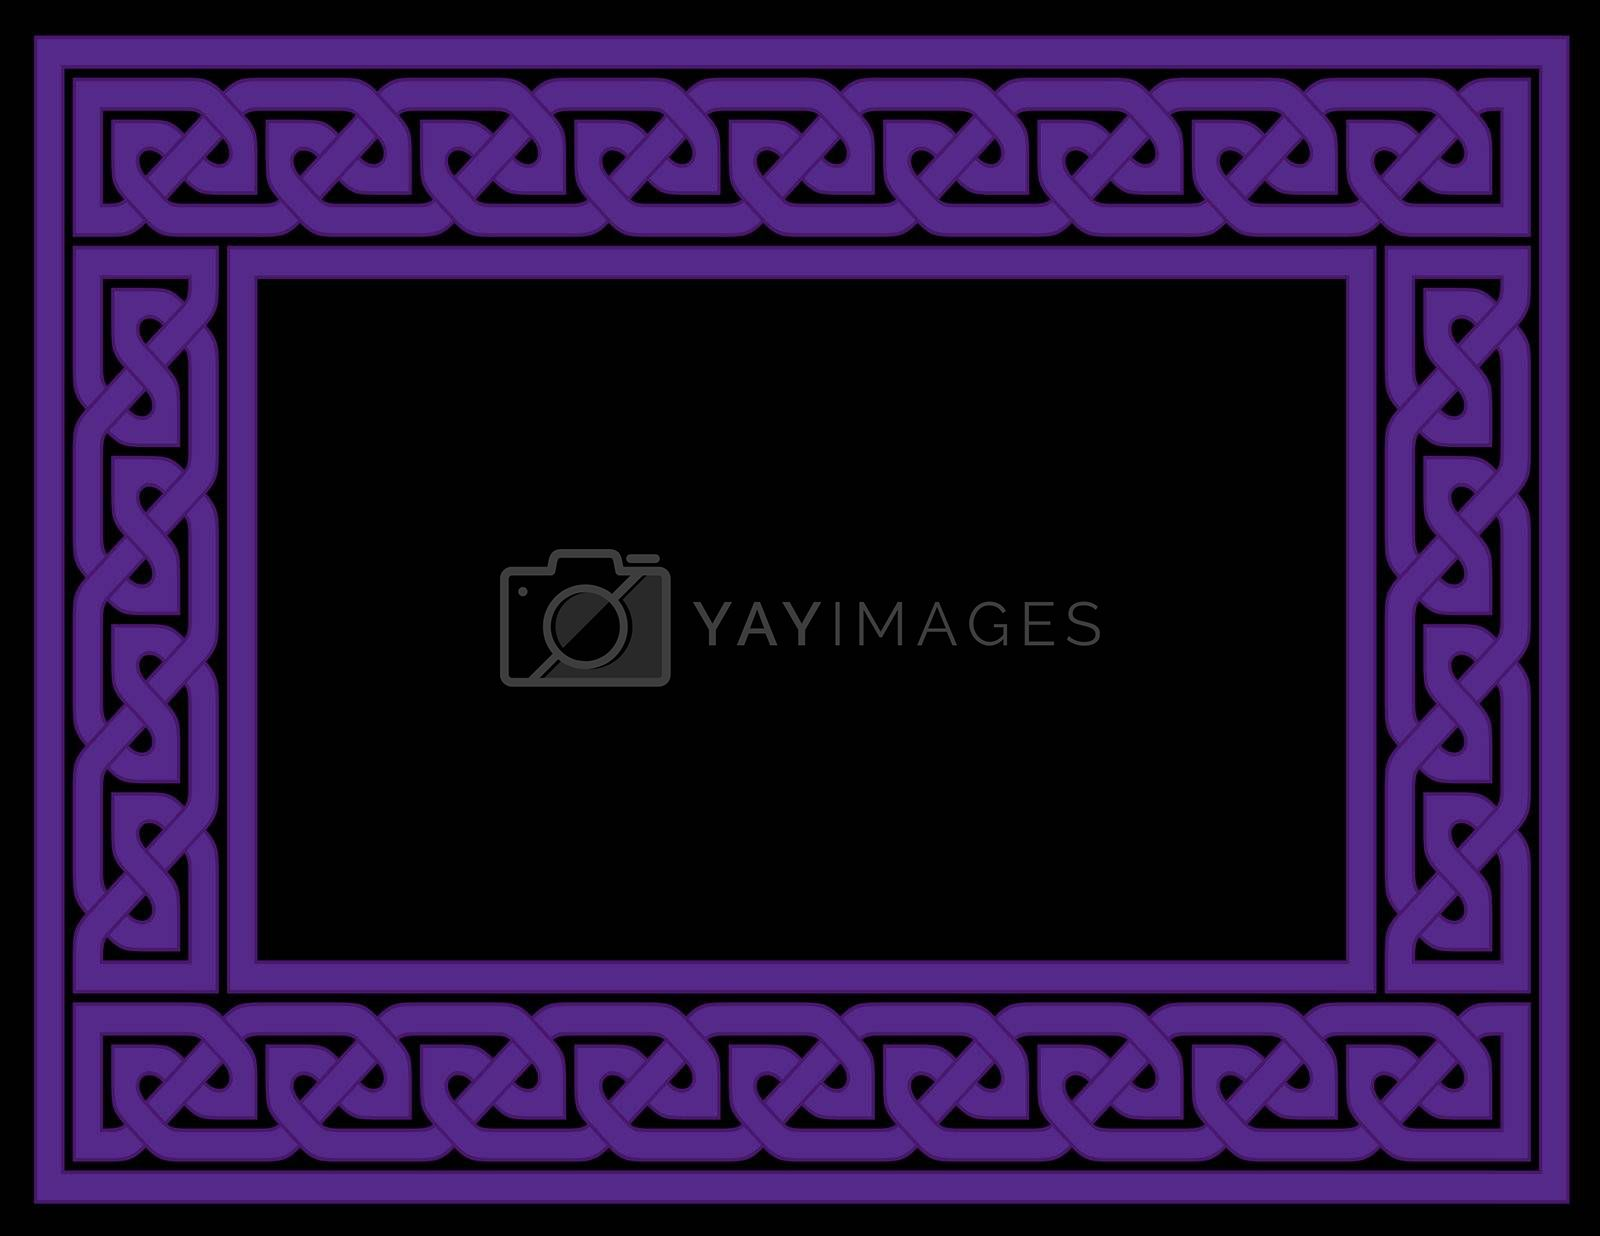 A Celtic knot frame in purple with black background, JPG version.